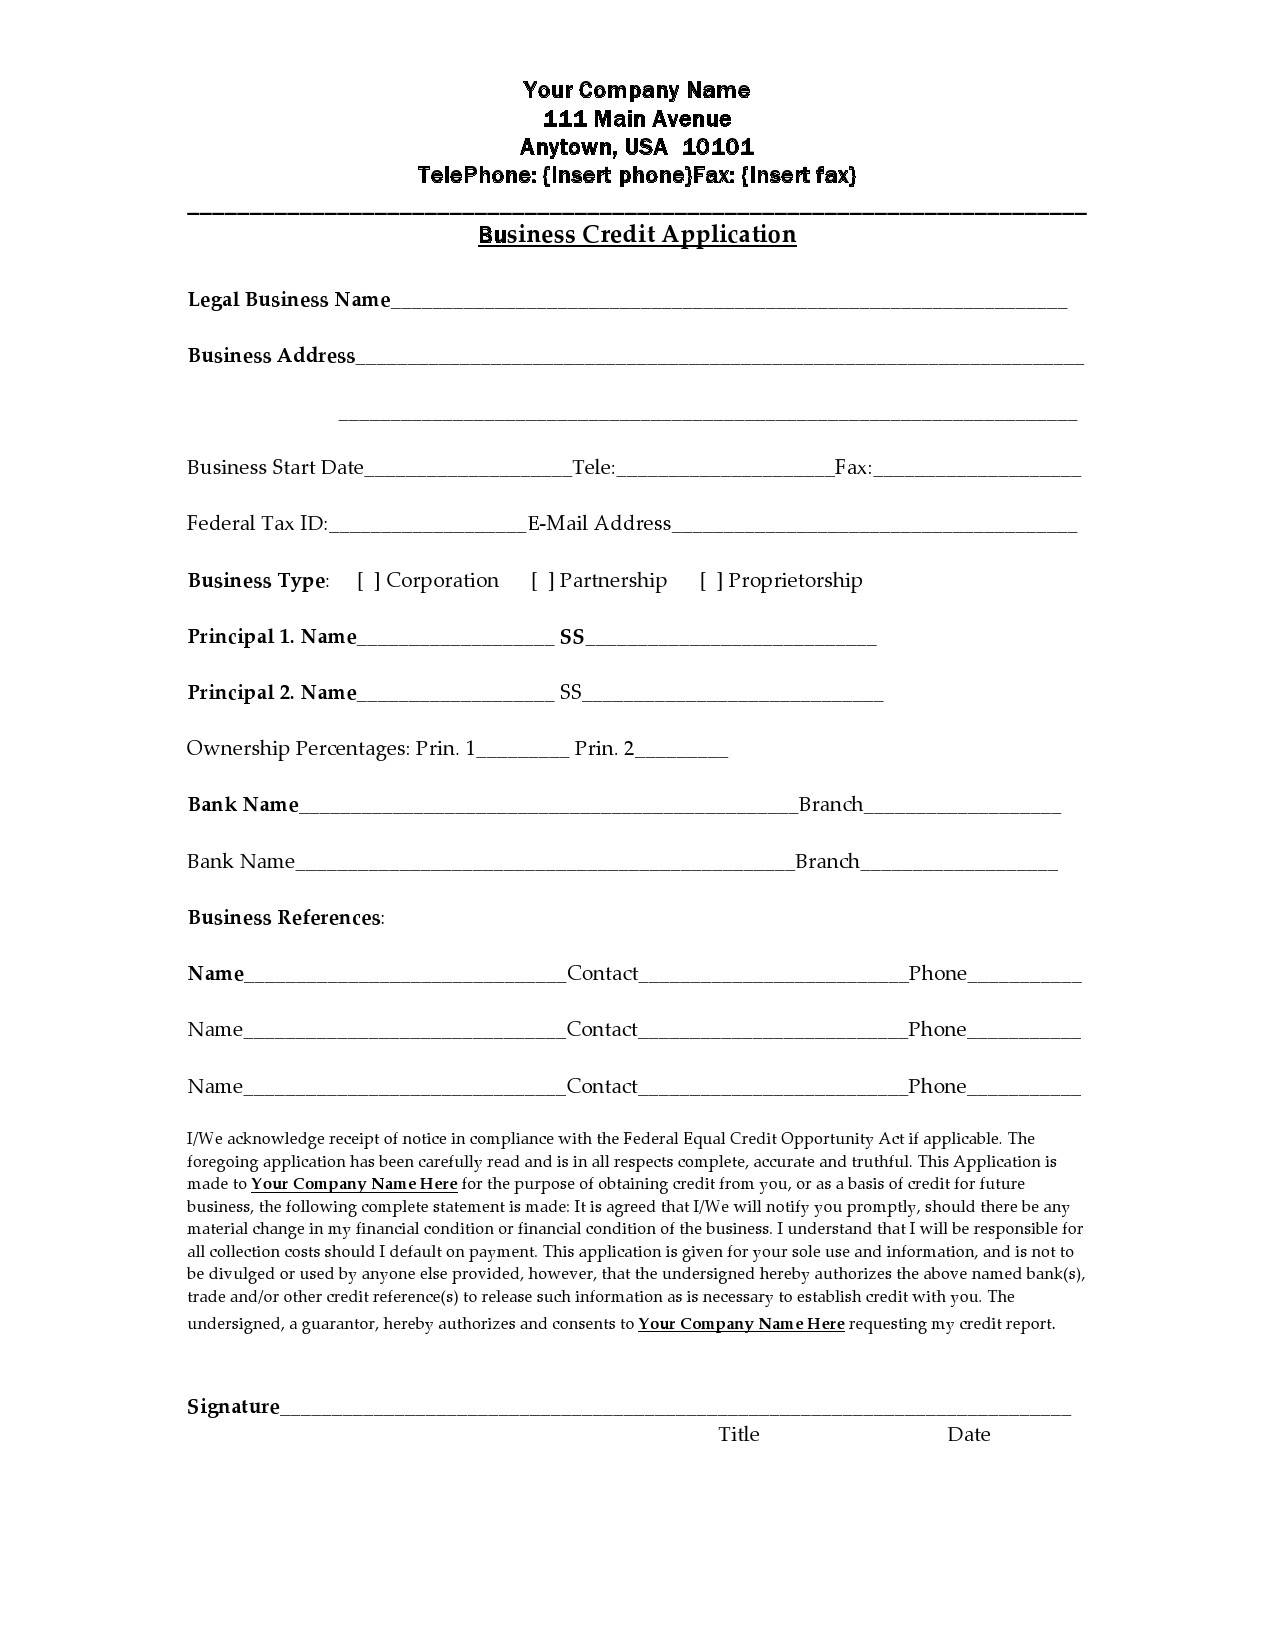 Free business credit application 08